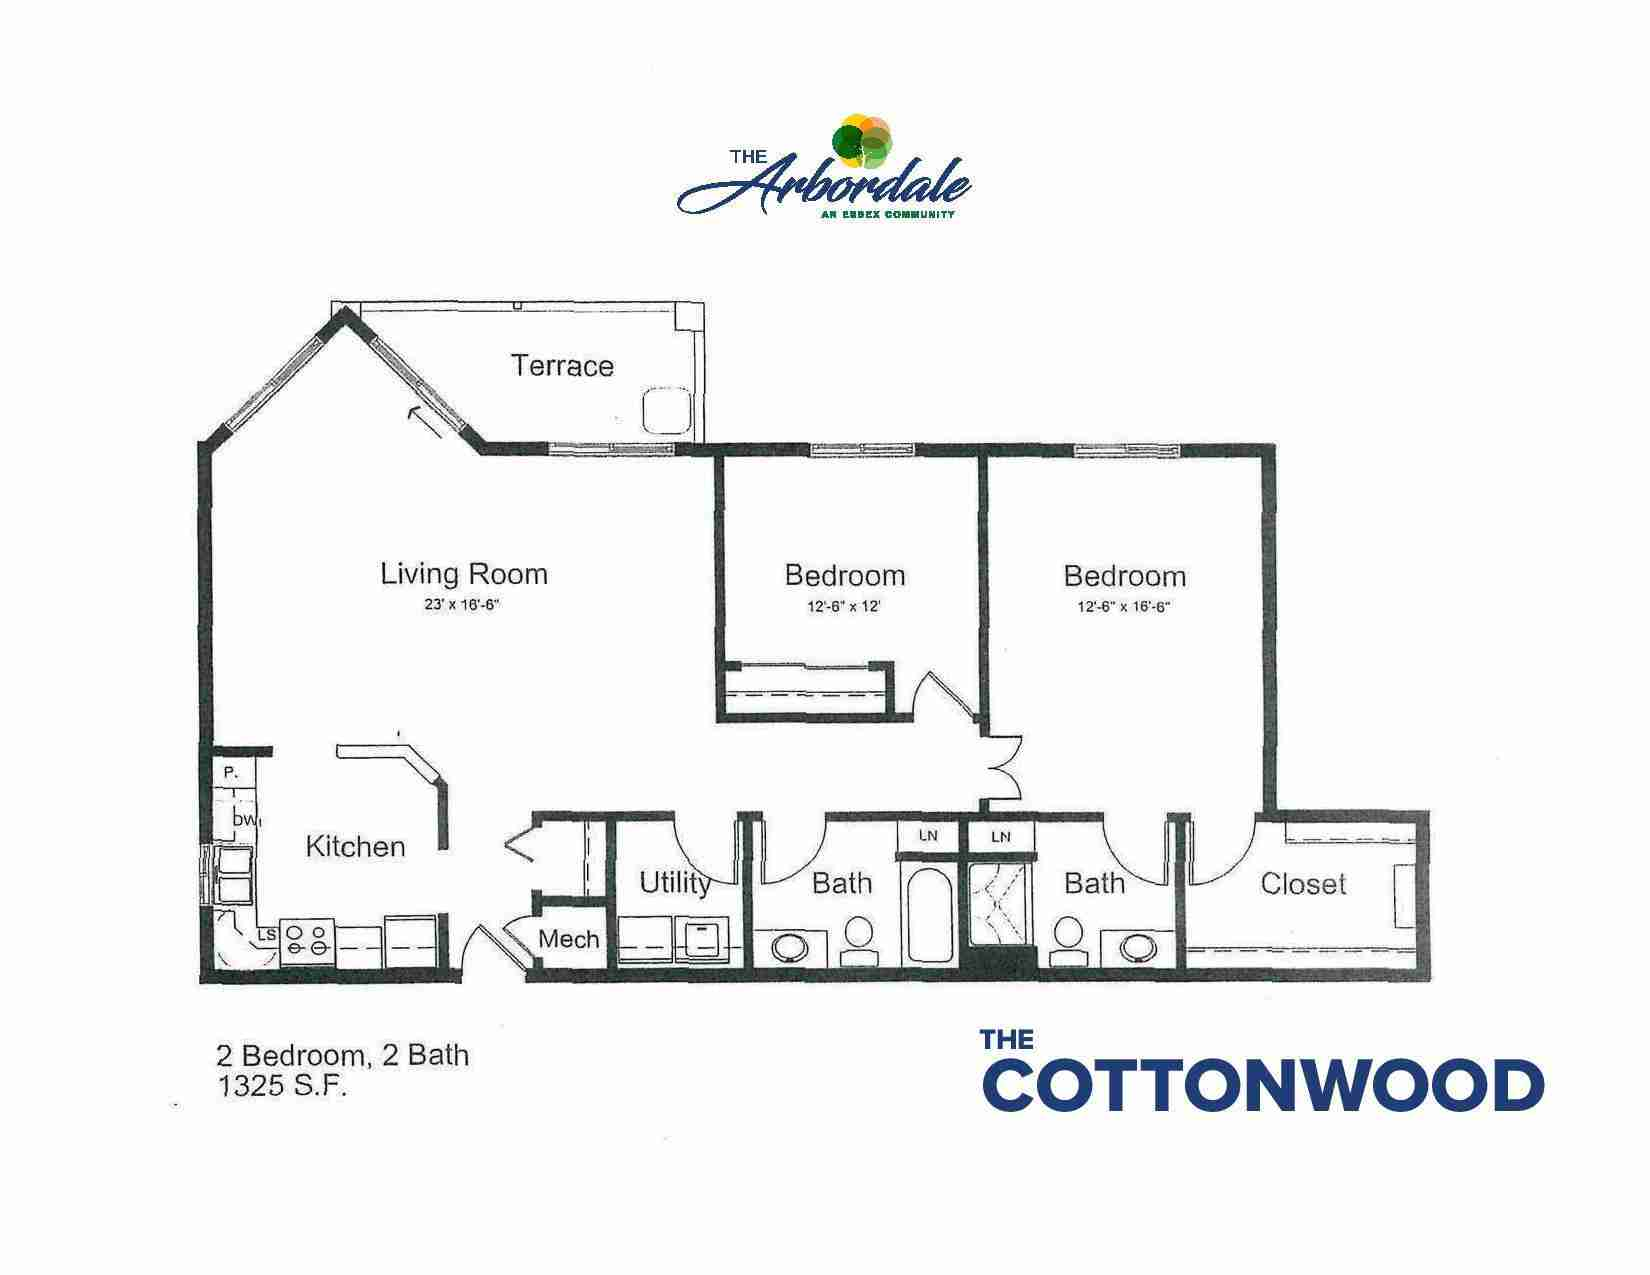 the cottonwood floor plan, 2 bedroom, 2 bath, 1325 sq ft